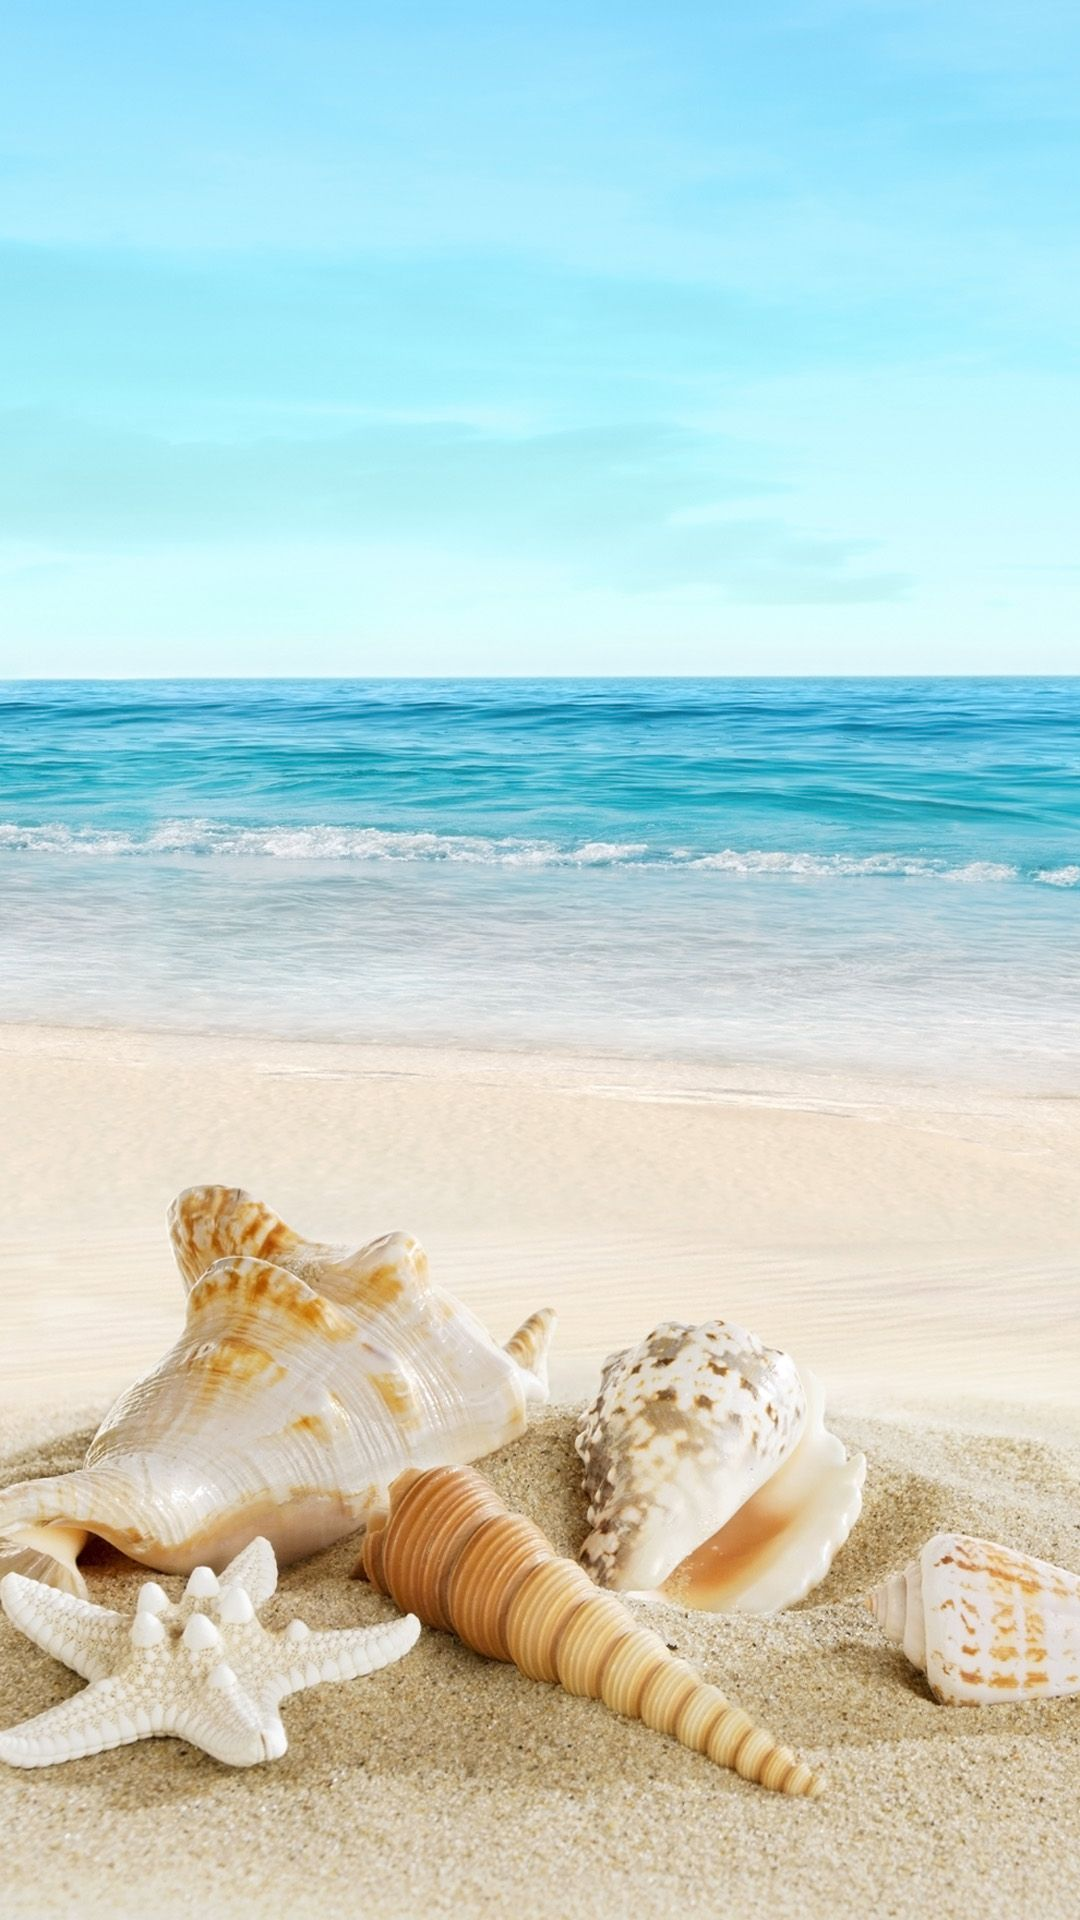 Nature Sunny Sea Shell Beach Iphone 6 Wallpaper Papel